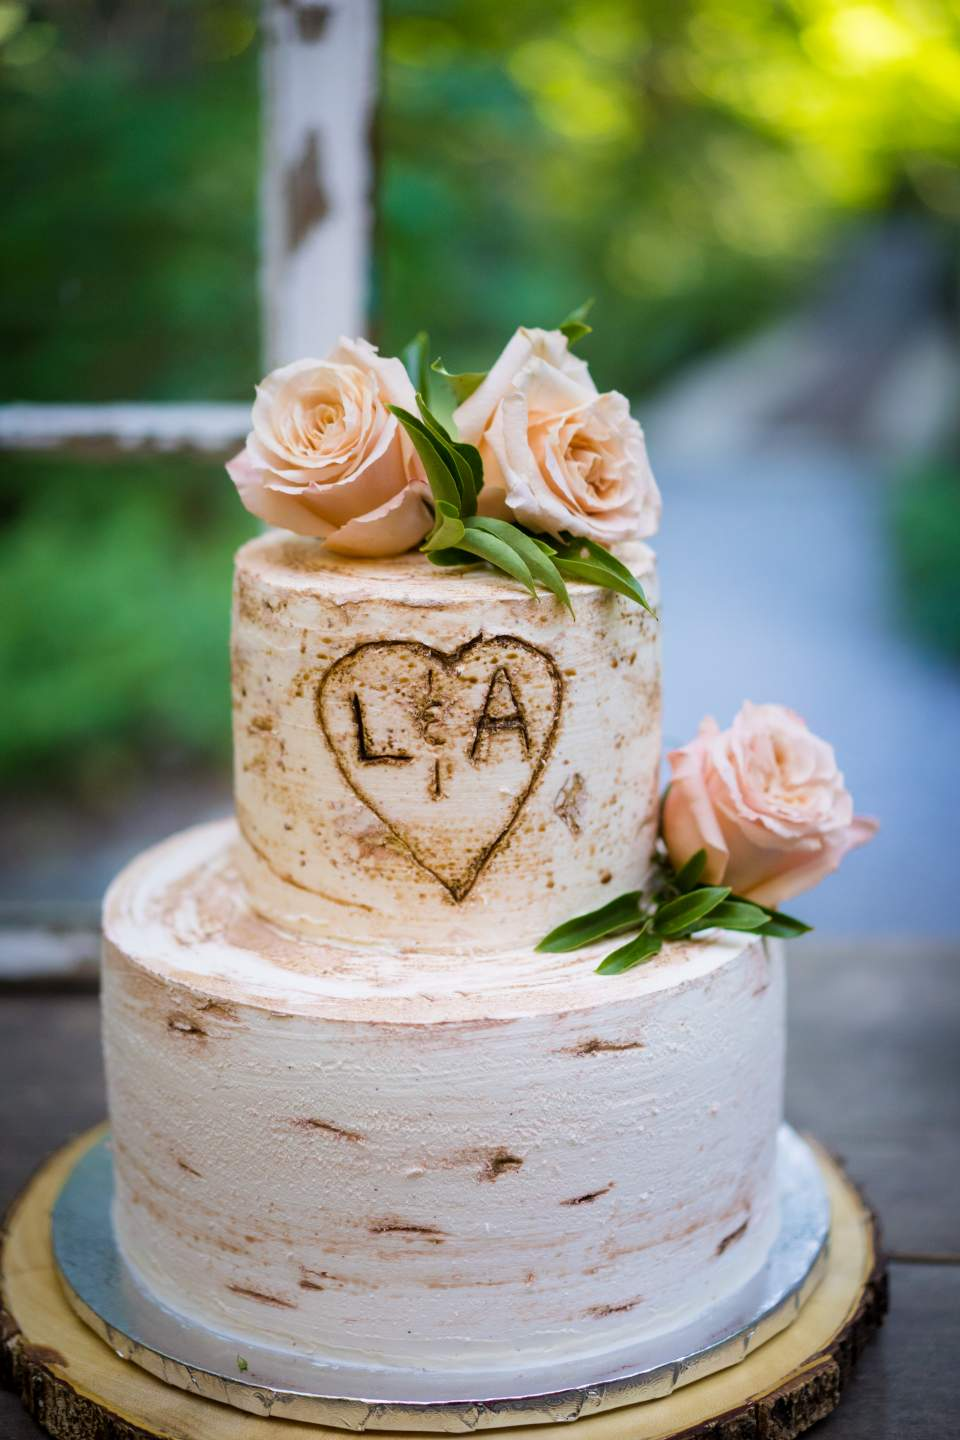 wedding cake made to look like a birch log